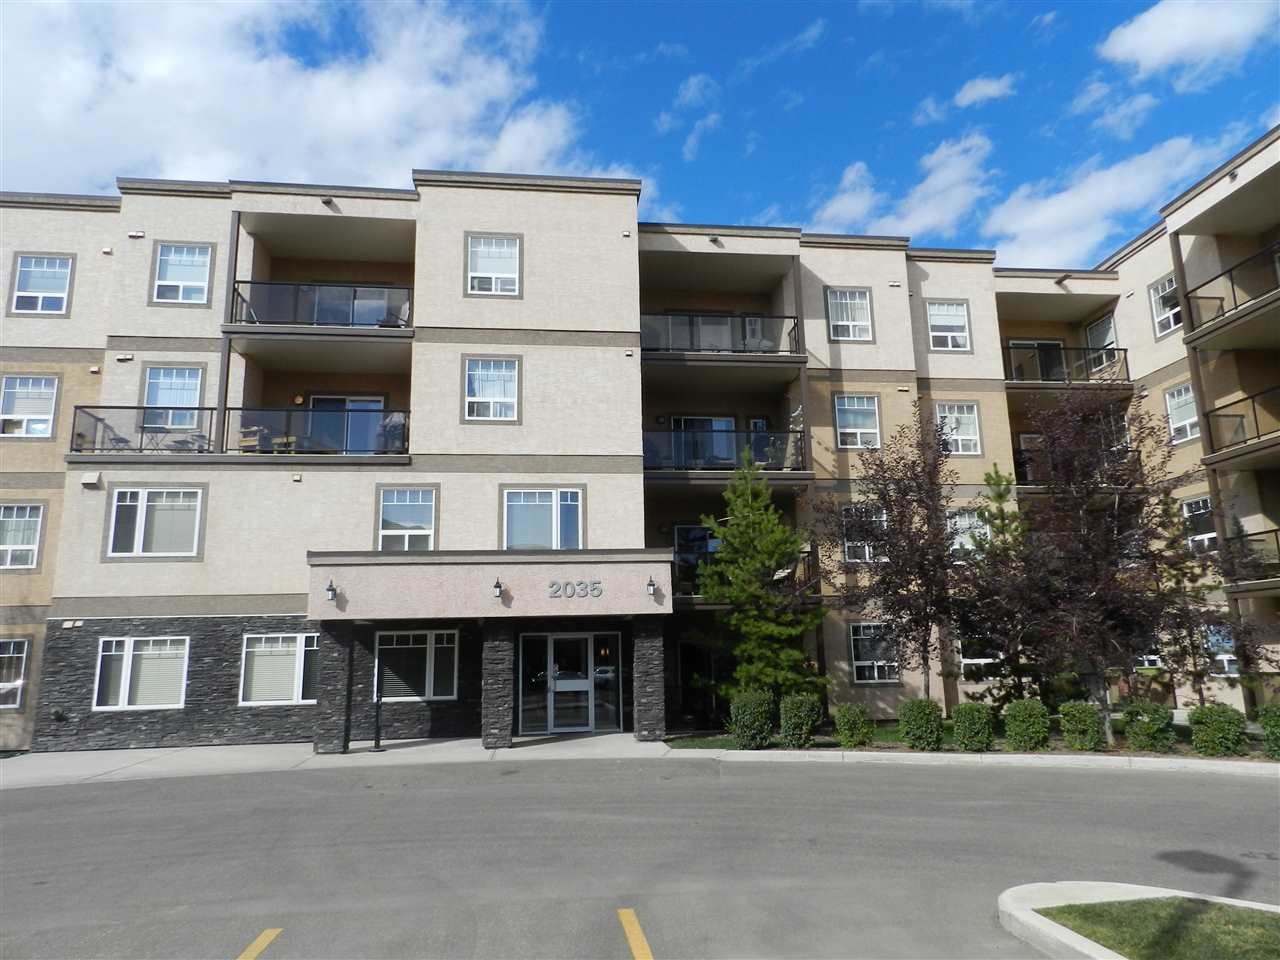 422 2035 GRANTHAM Court, 1 bed, 1 bath, at $220,900